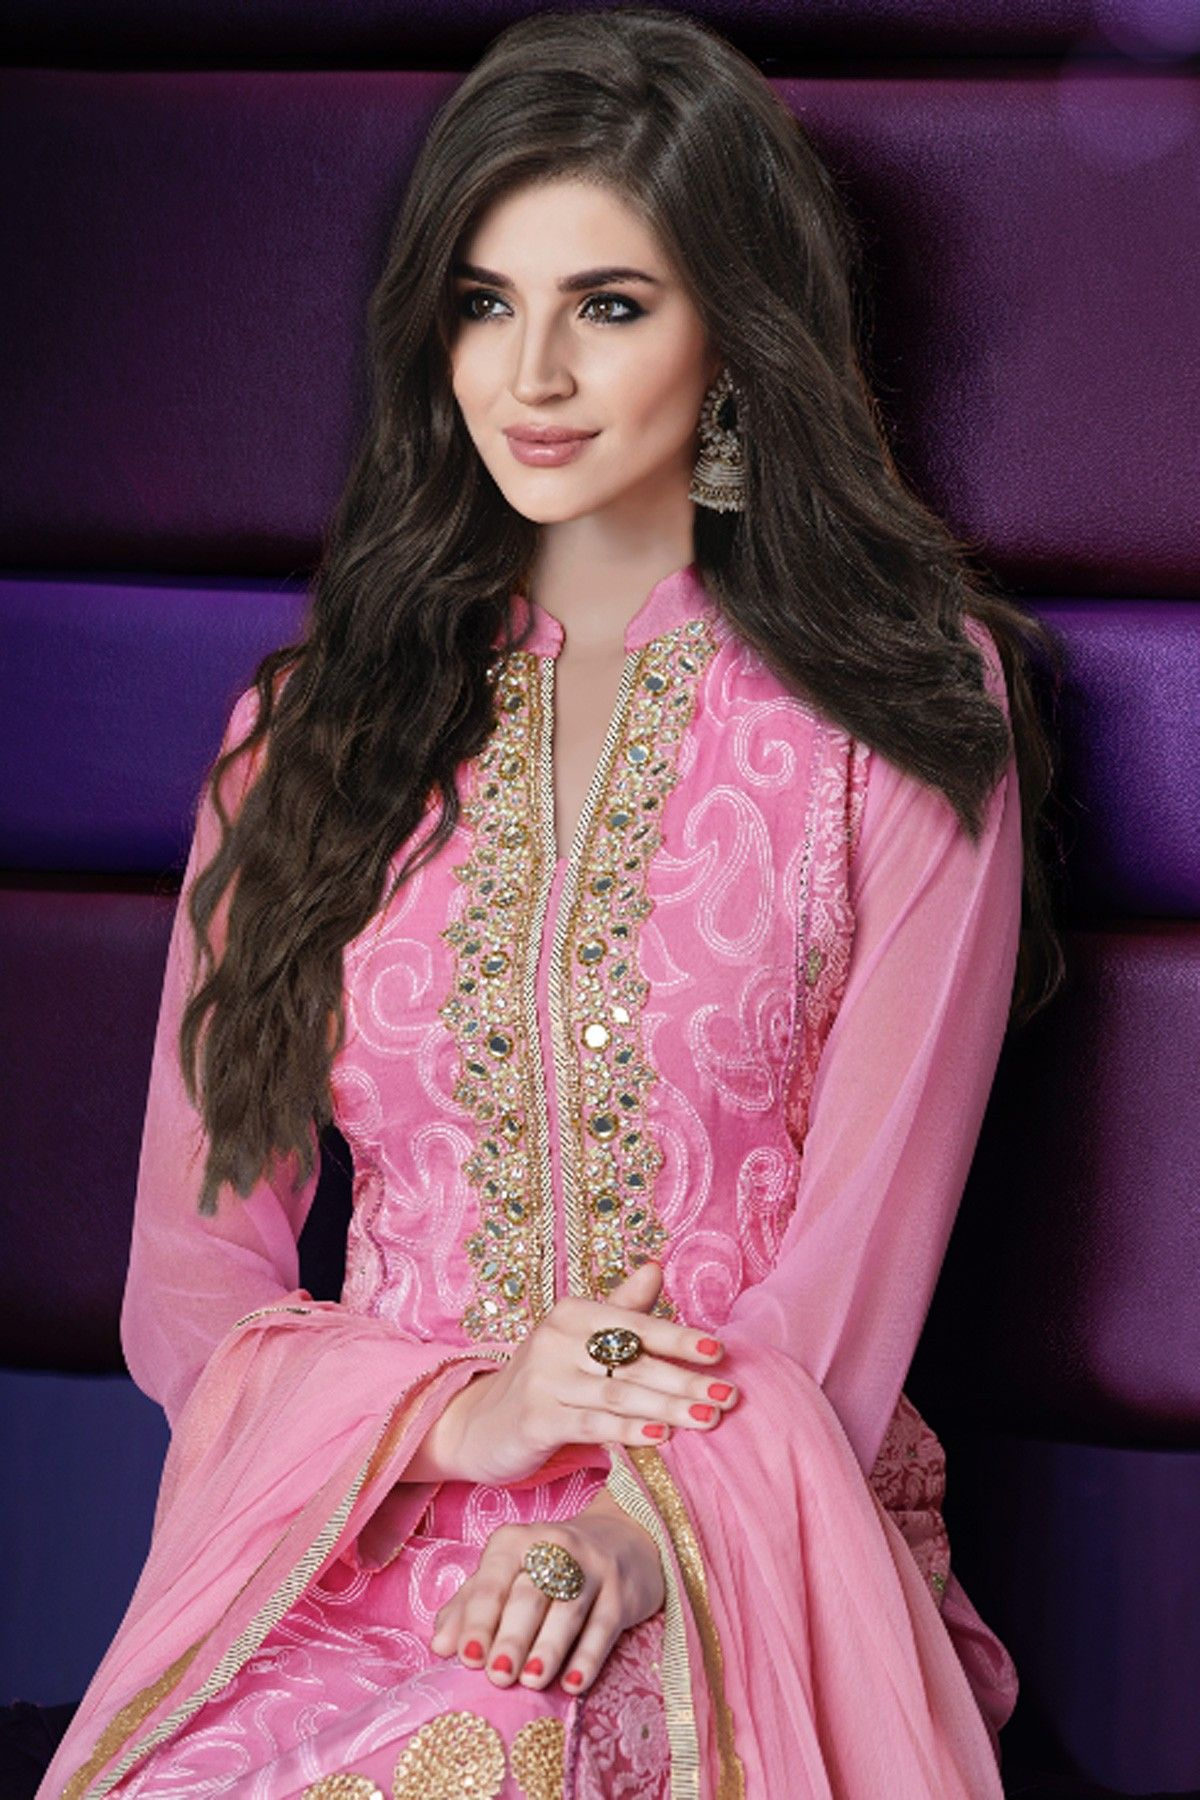 Light pink georgette embroidered Salwar kameez with Chinese collar design #beautiful #stunning #elegant #attractive